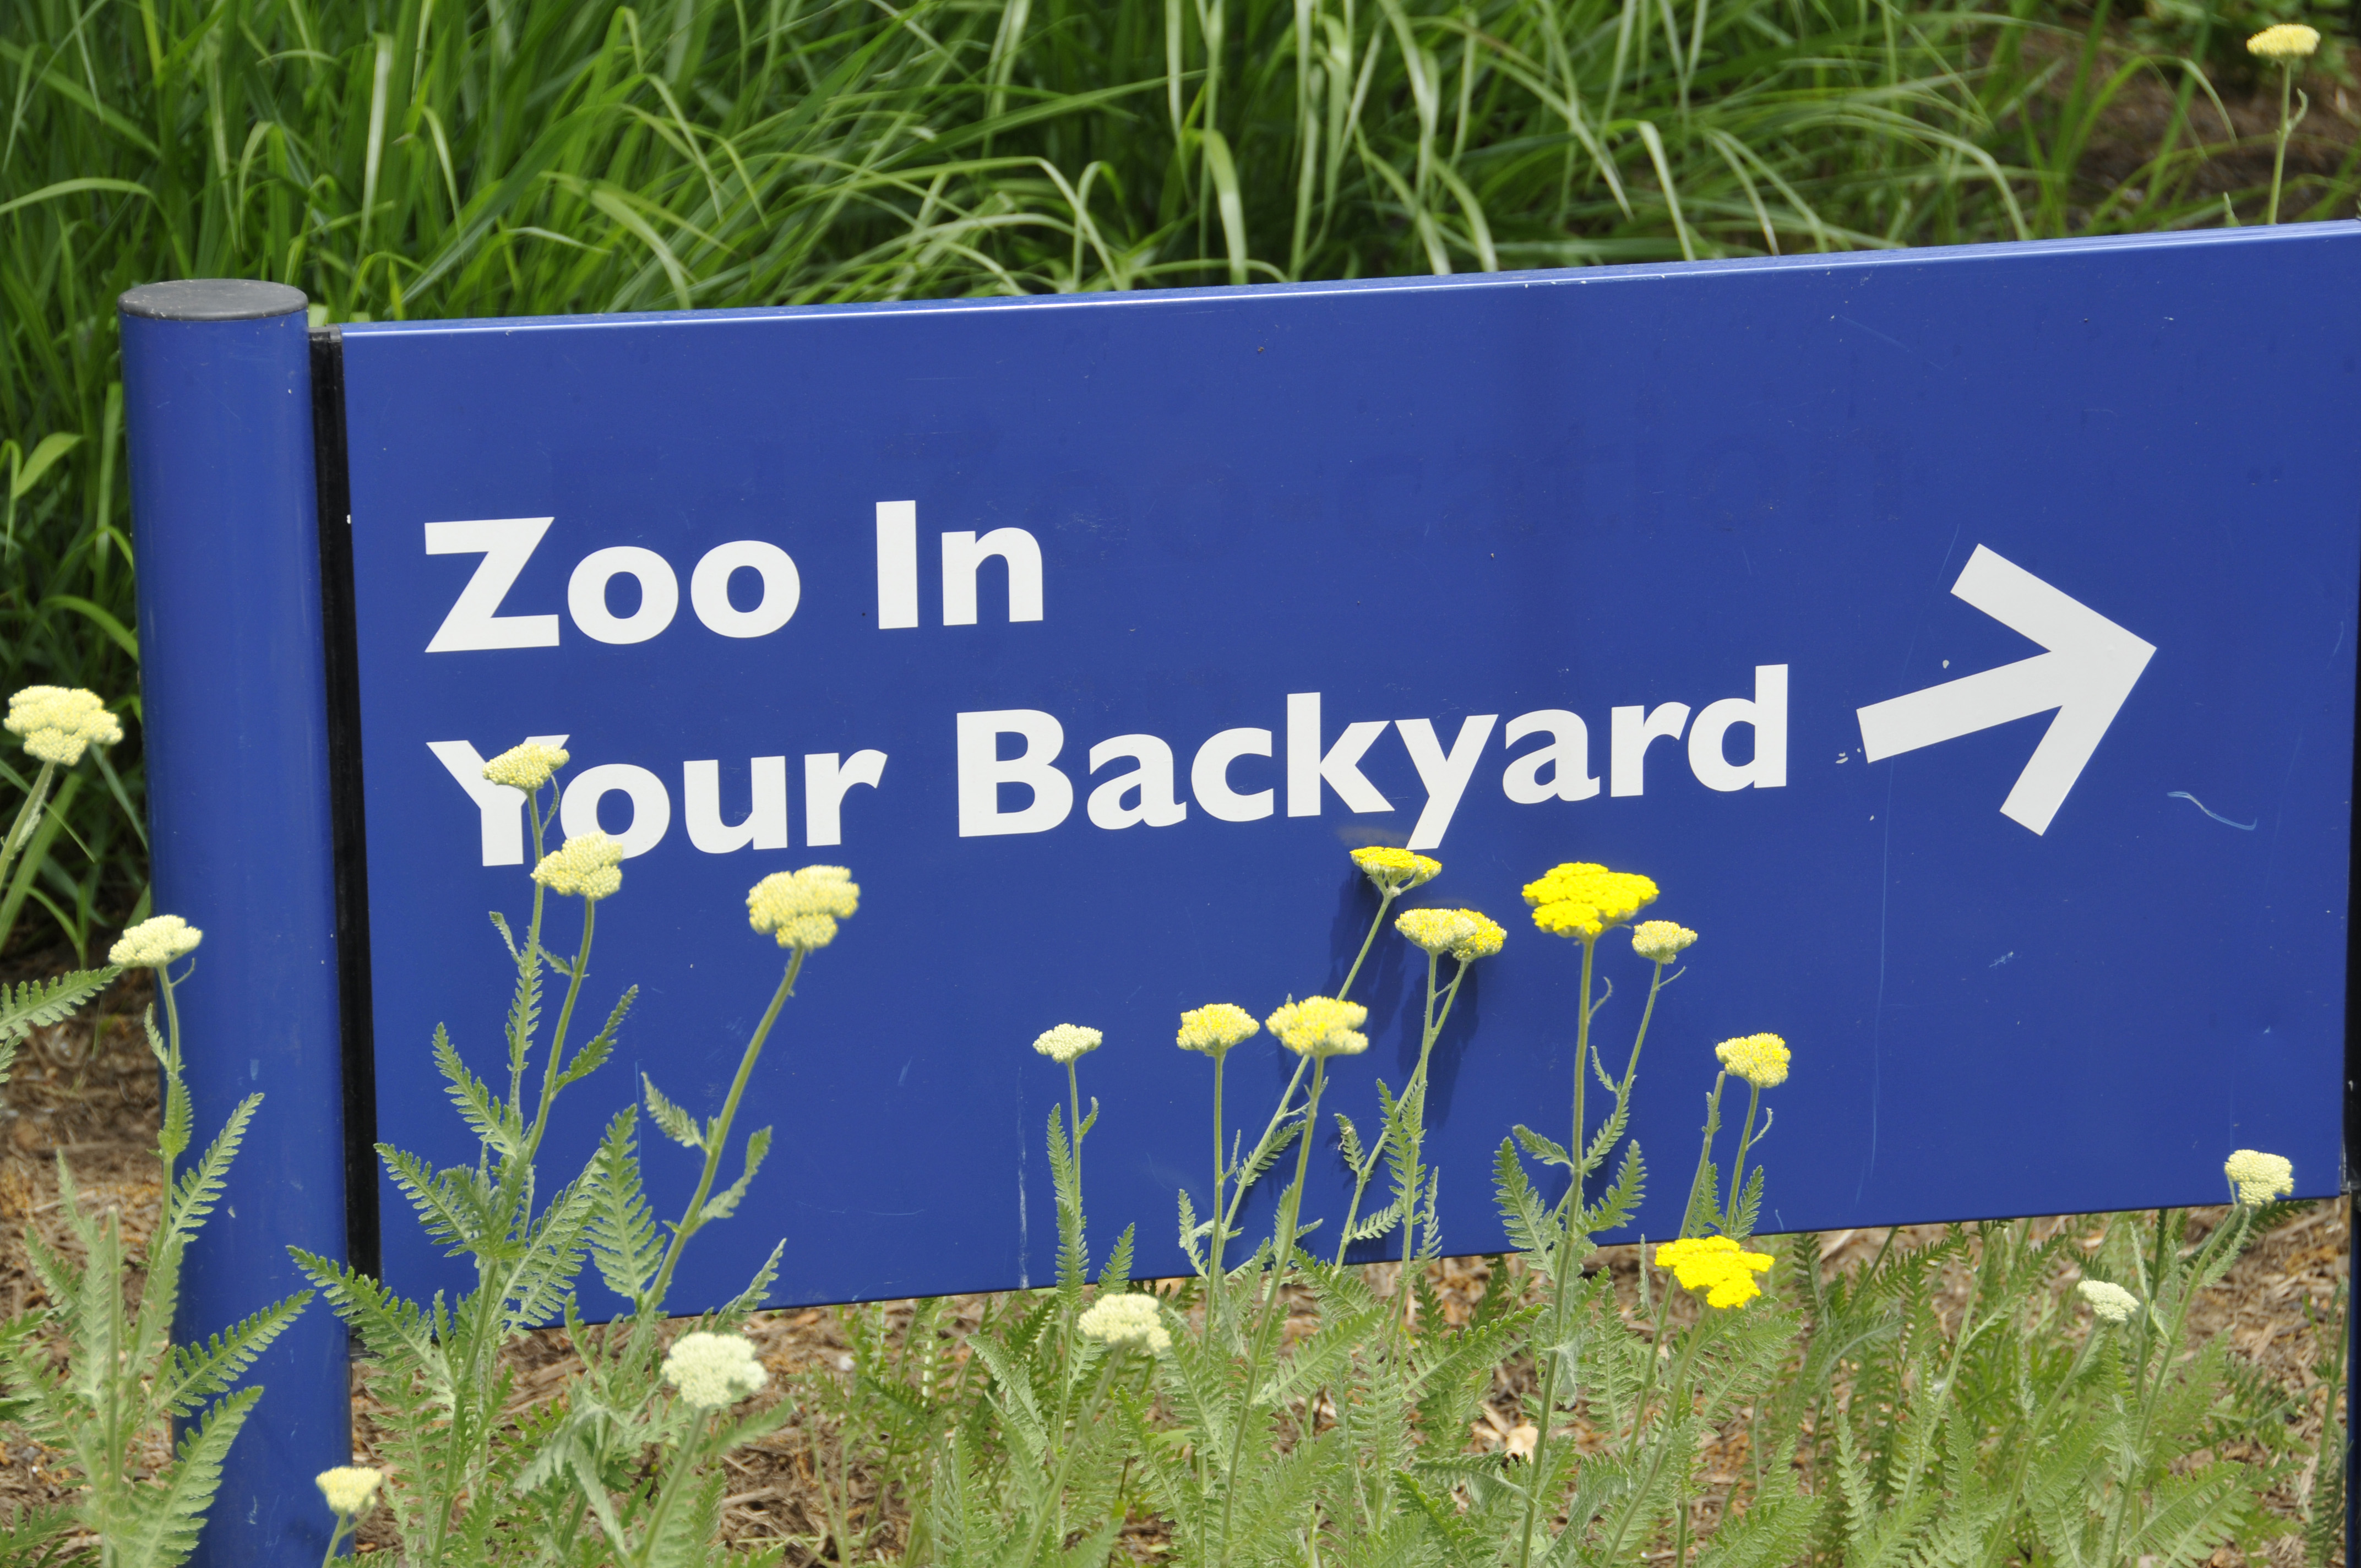 zoo in your backyard sign